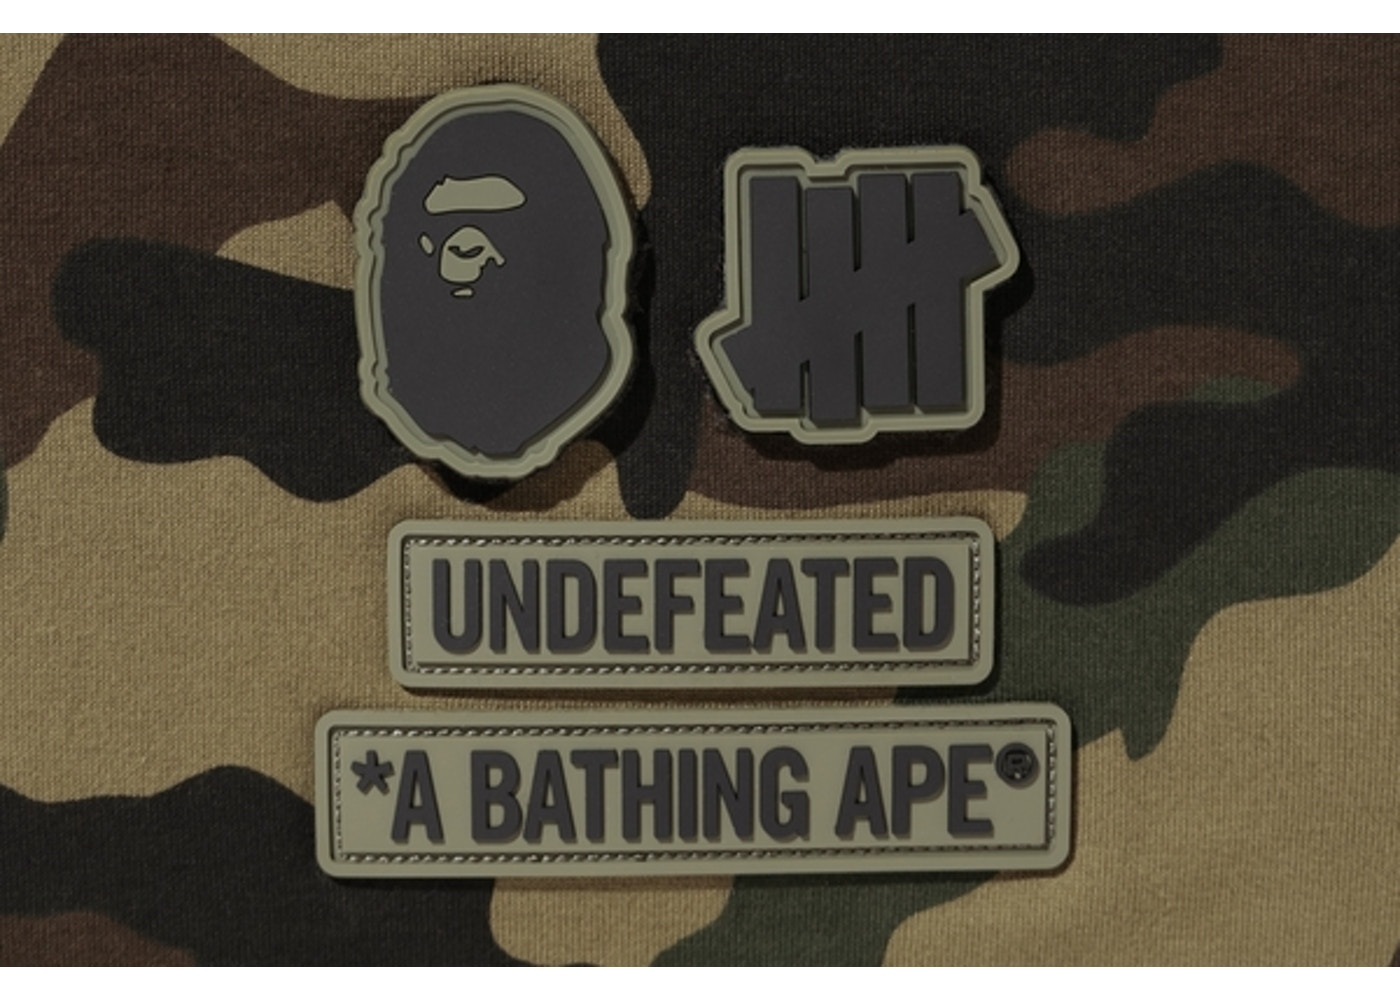 bfc69703 Streetwear - Bape T-Shirts - New Highest Bids